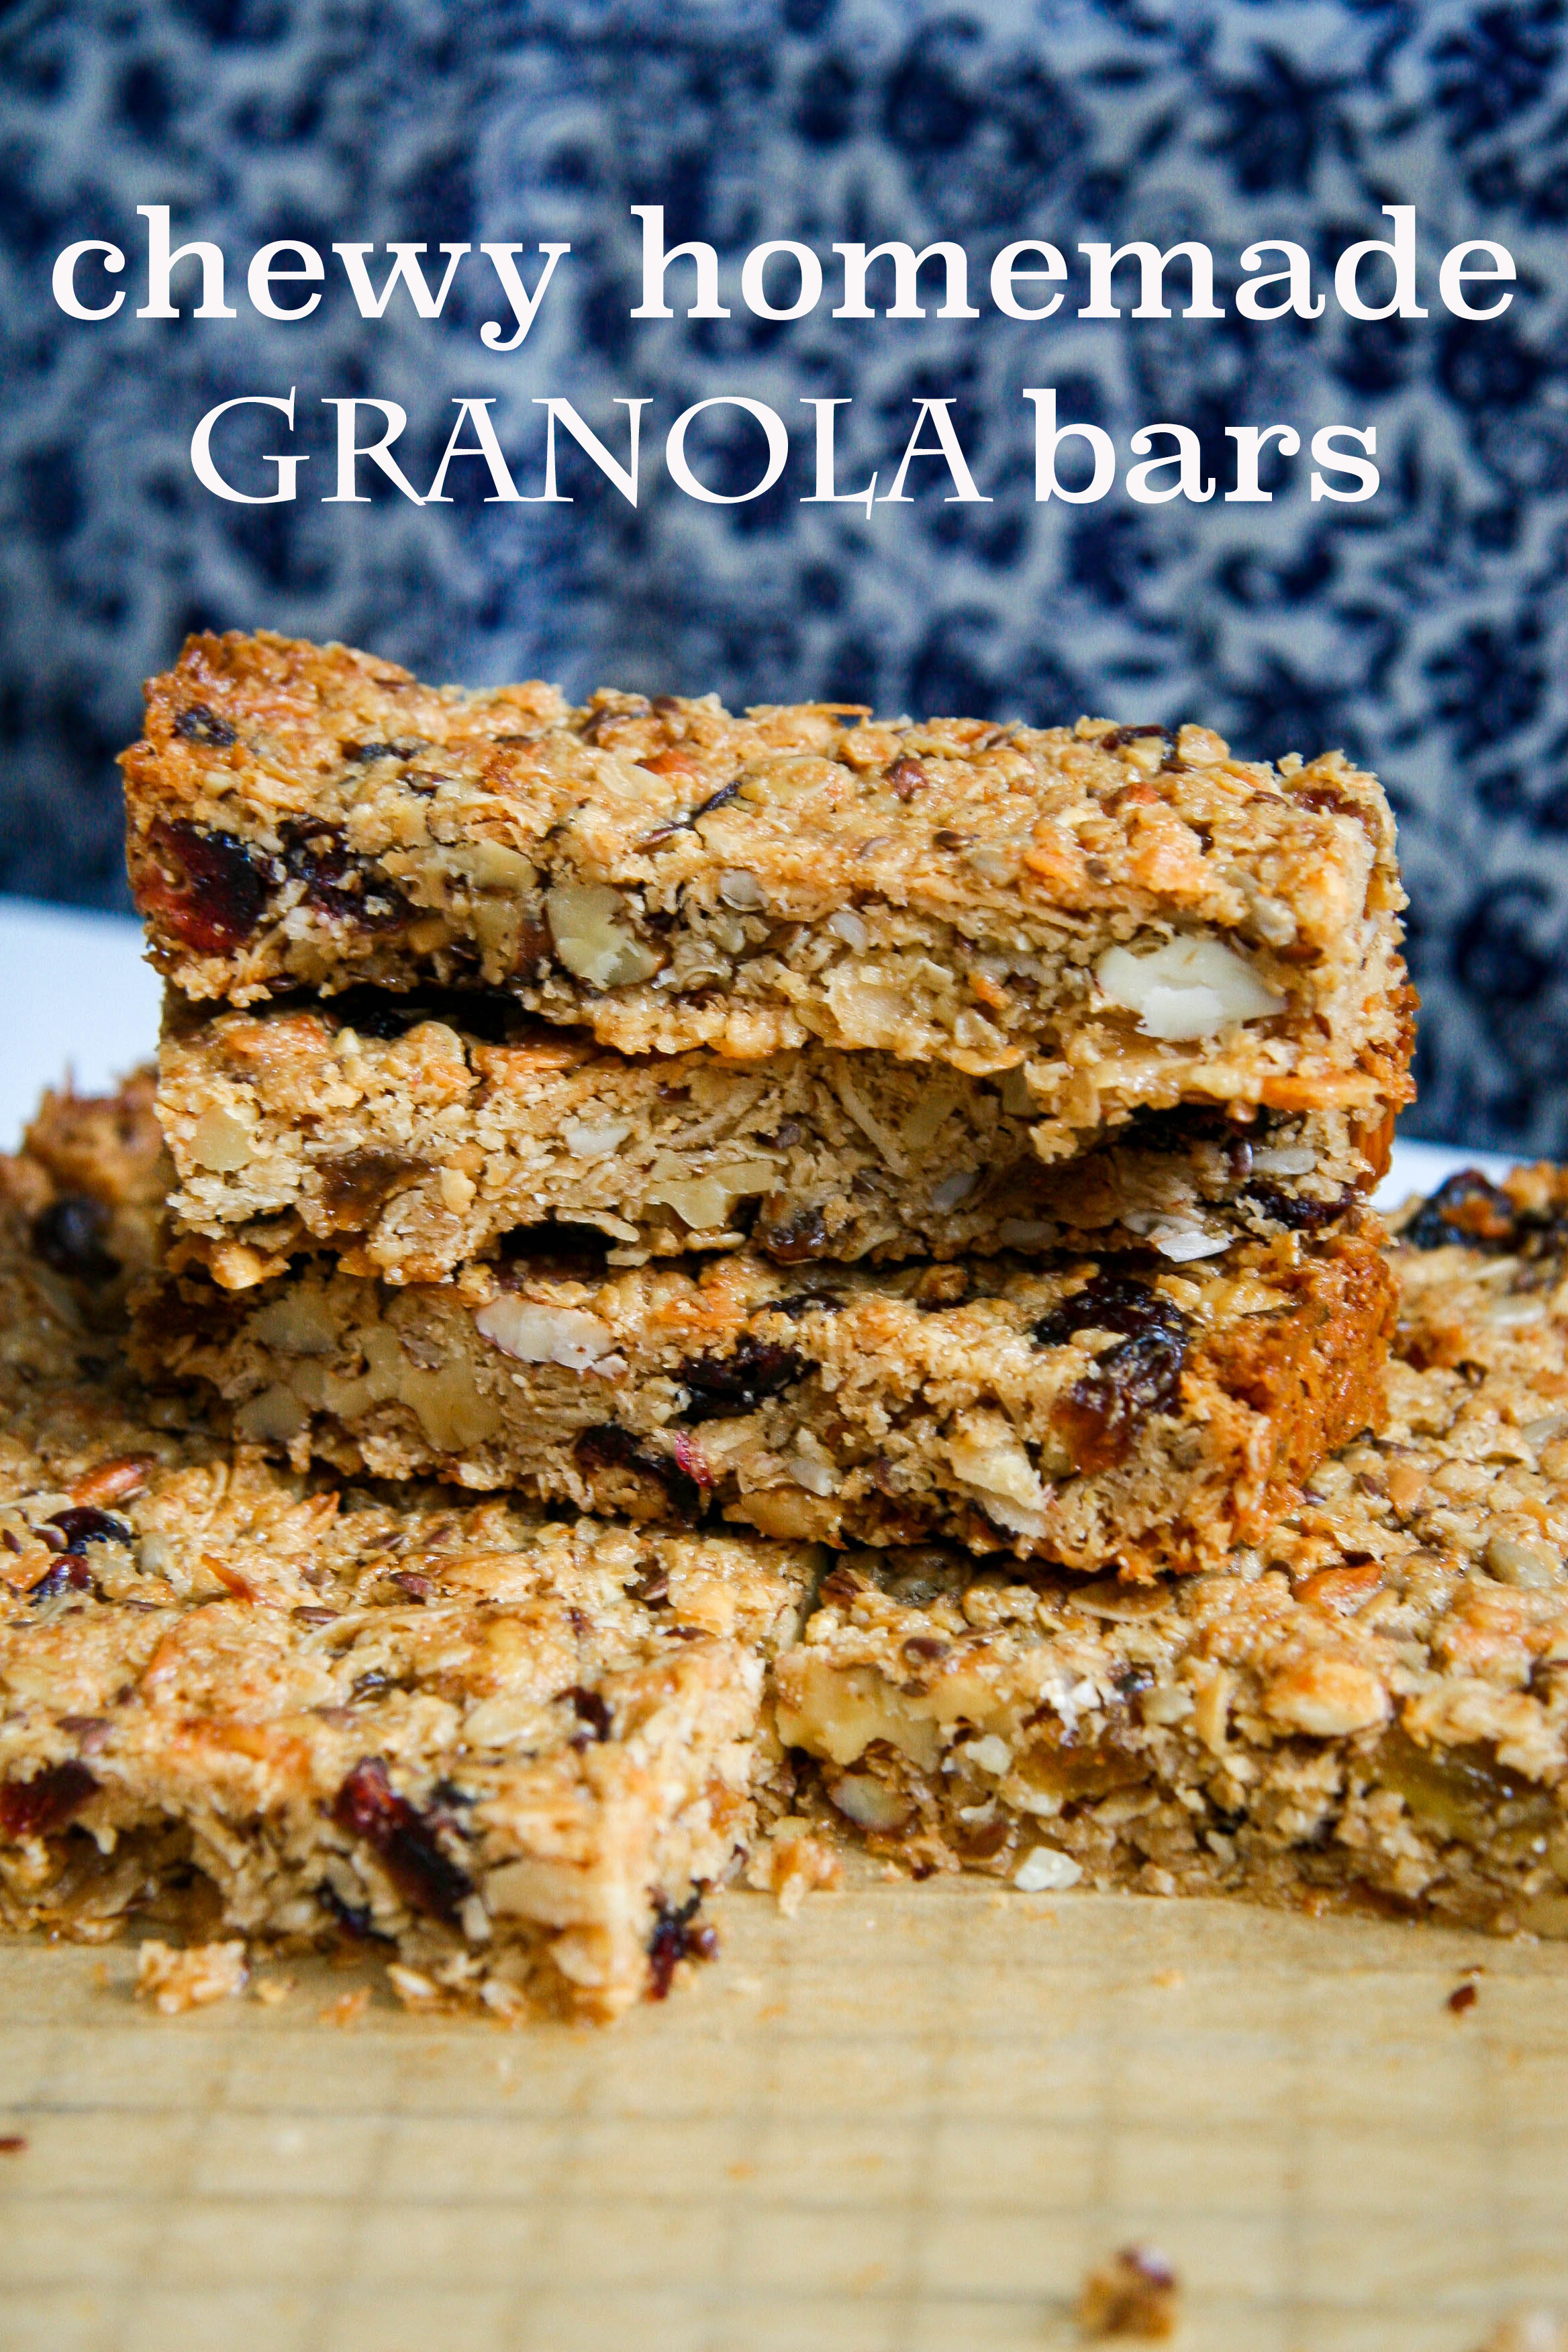 chewy-homemade-granola-nature-bars-recipe-13